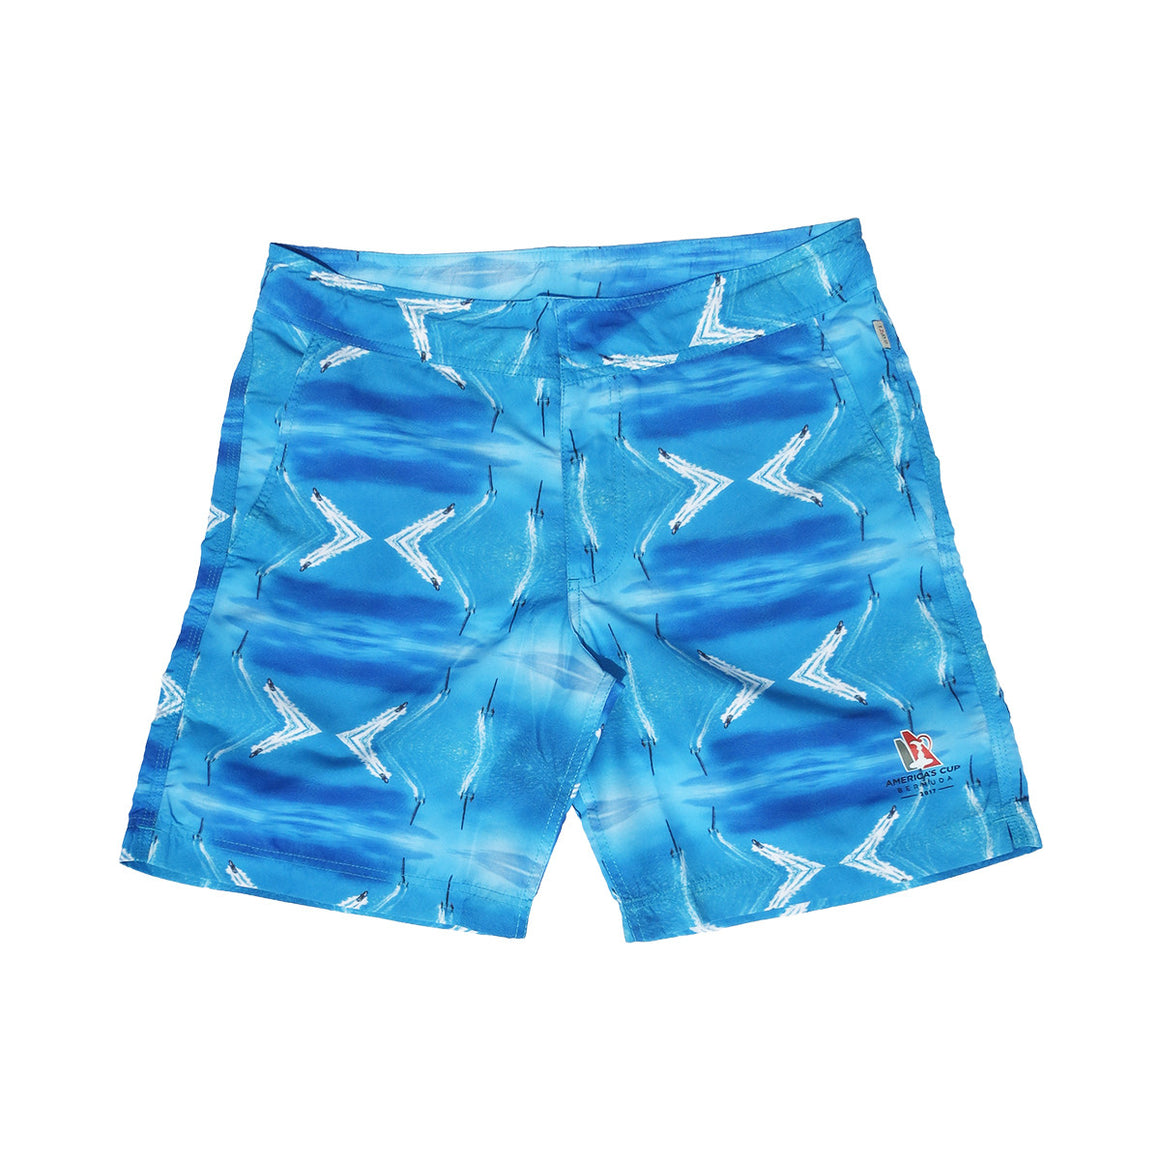 TABS | Swim Short | Racing Print | Product Shot | front